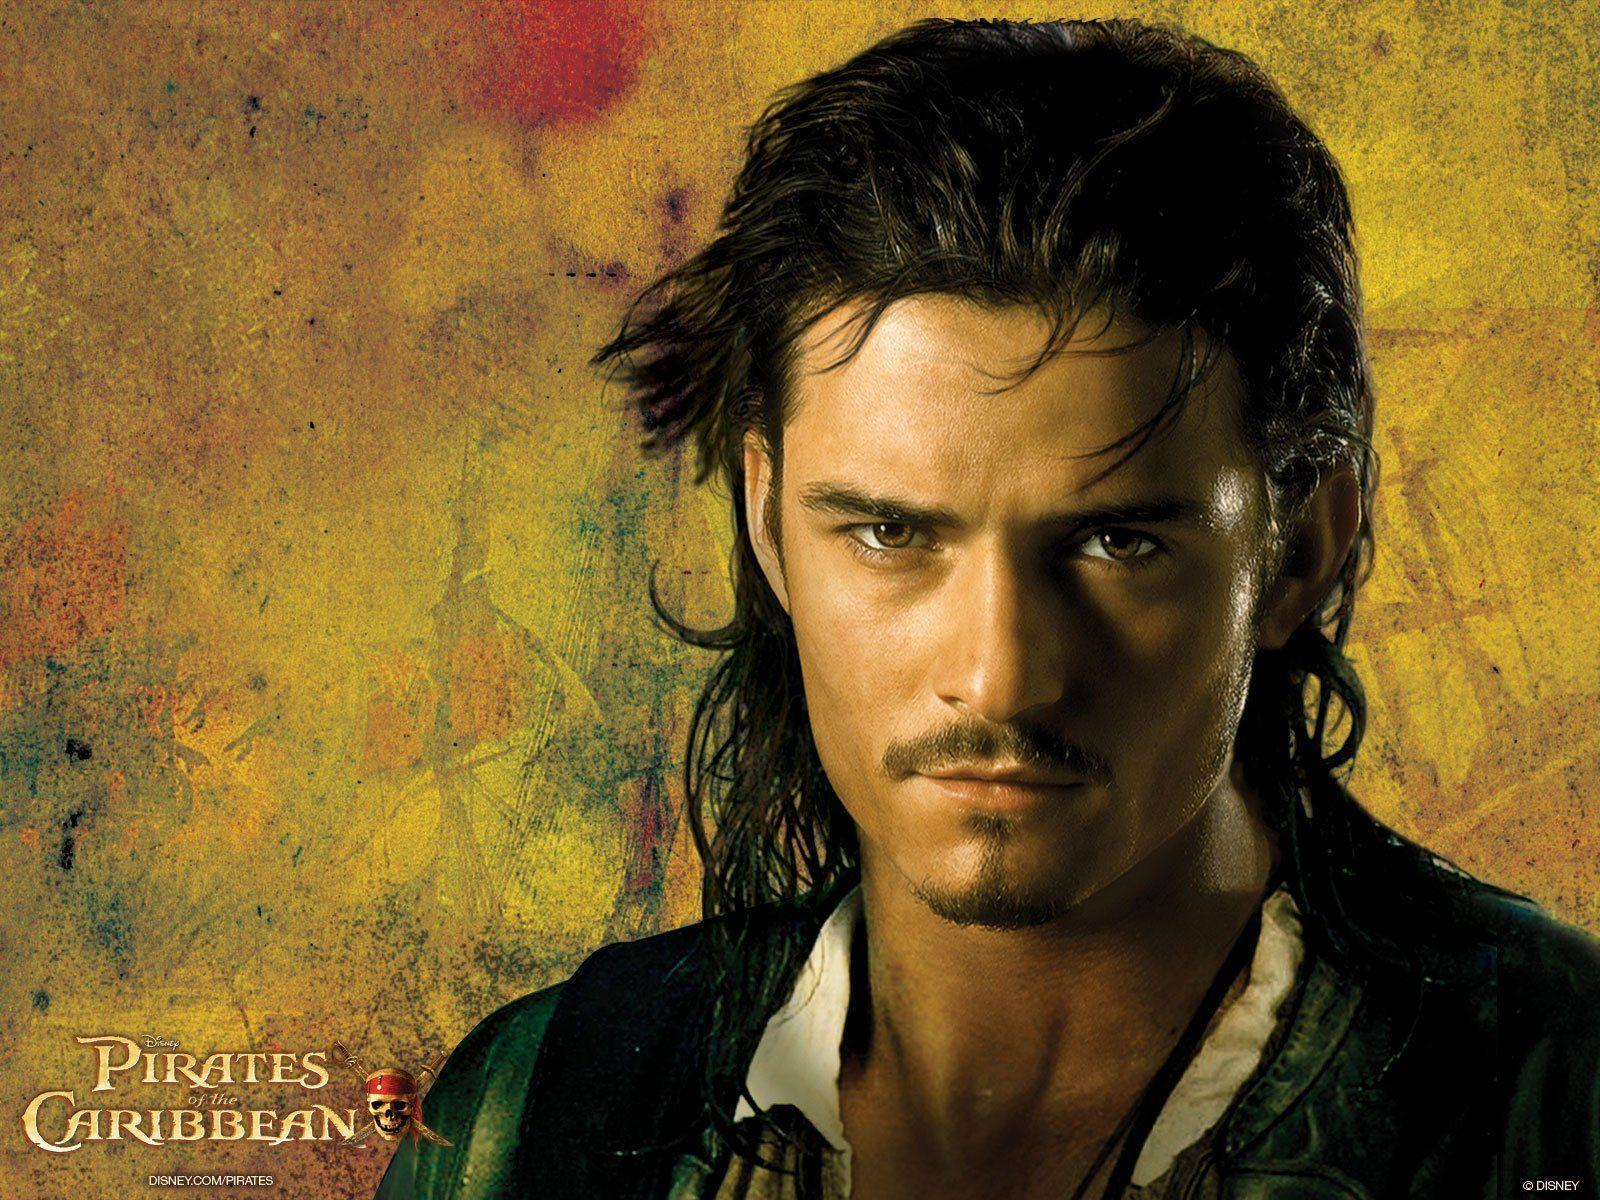 96 Orlando Bloom HD Wallpapers | Backgrounds - Wallpaper Abyss